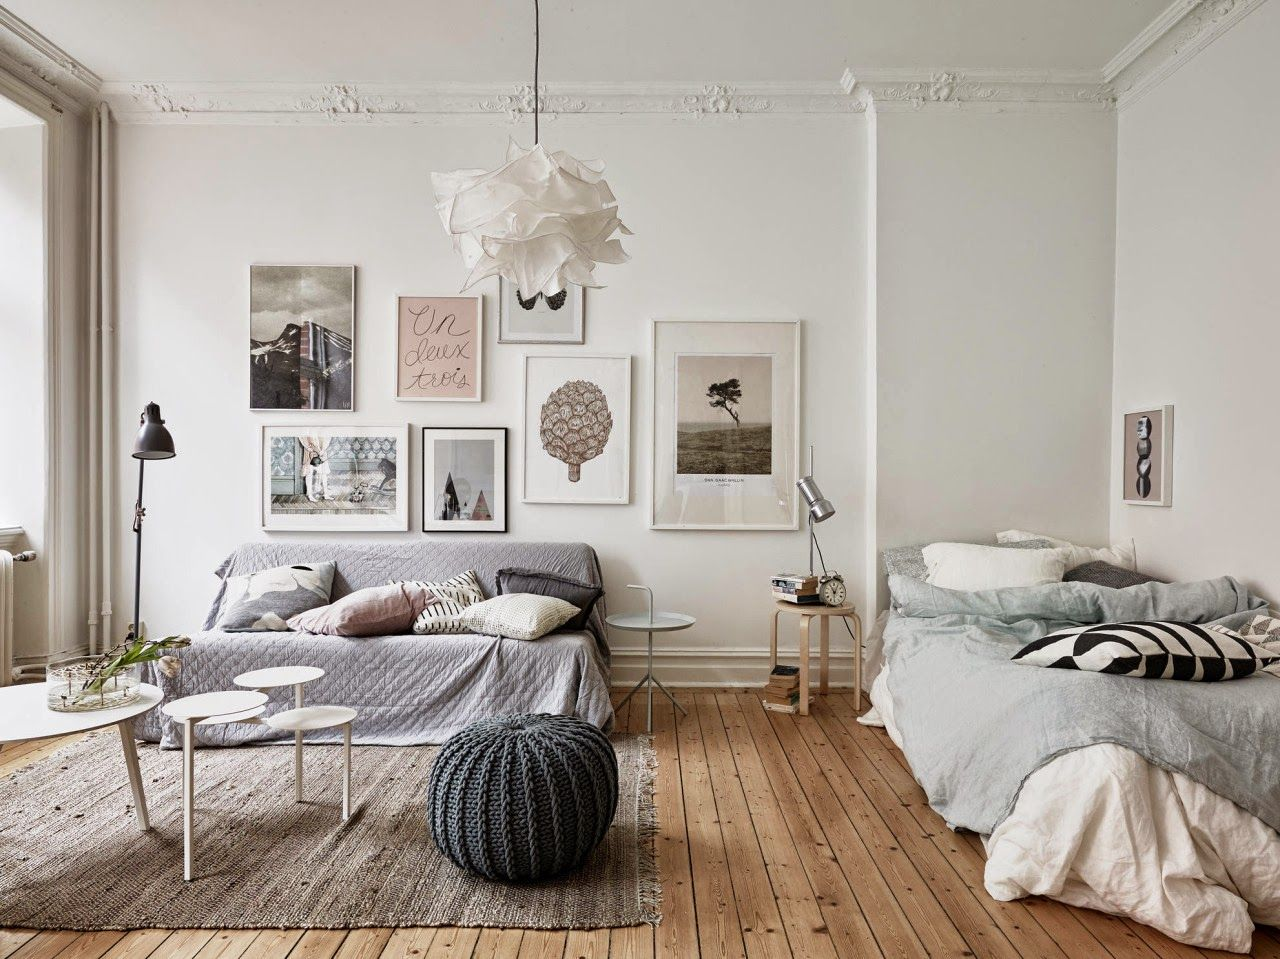 Design of odnushki: tricks for a small space - options and ideas (with photo) 71